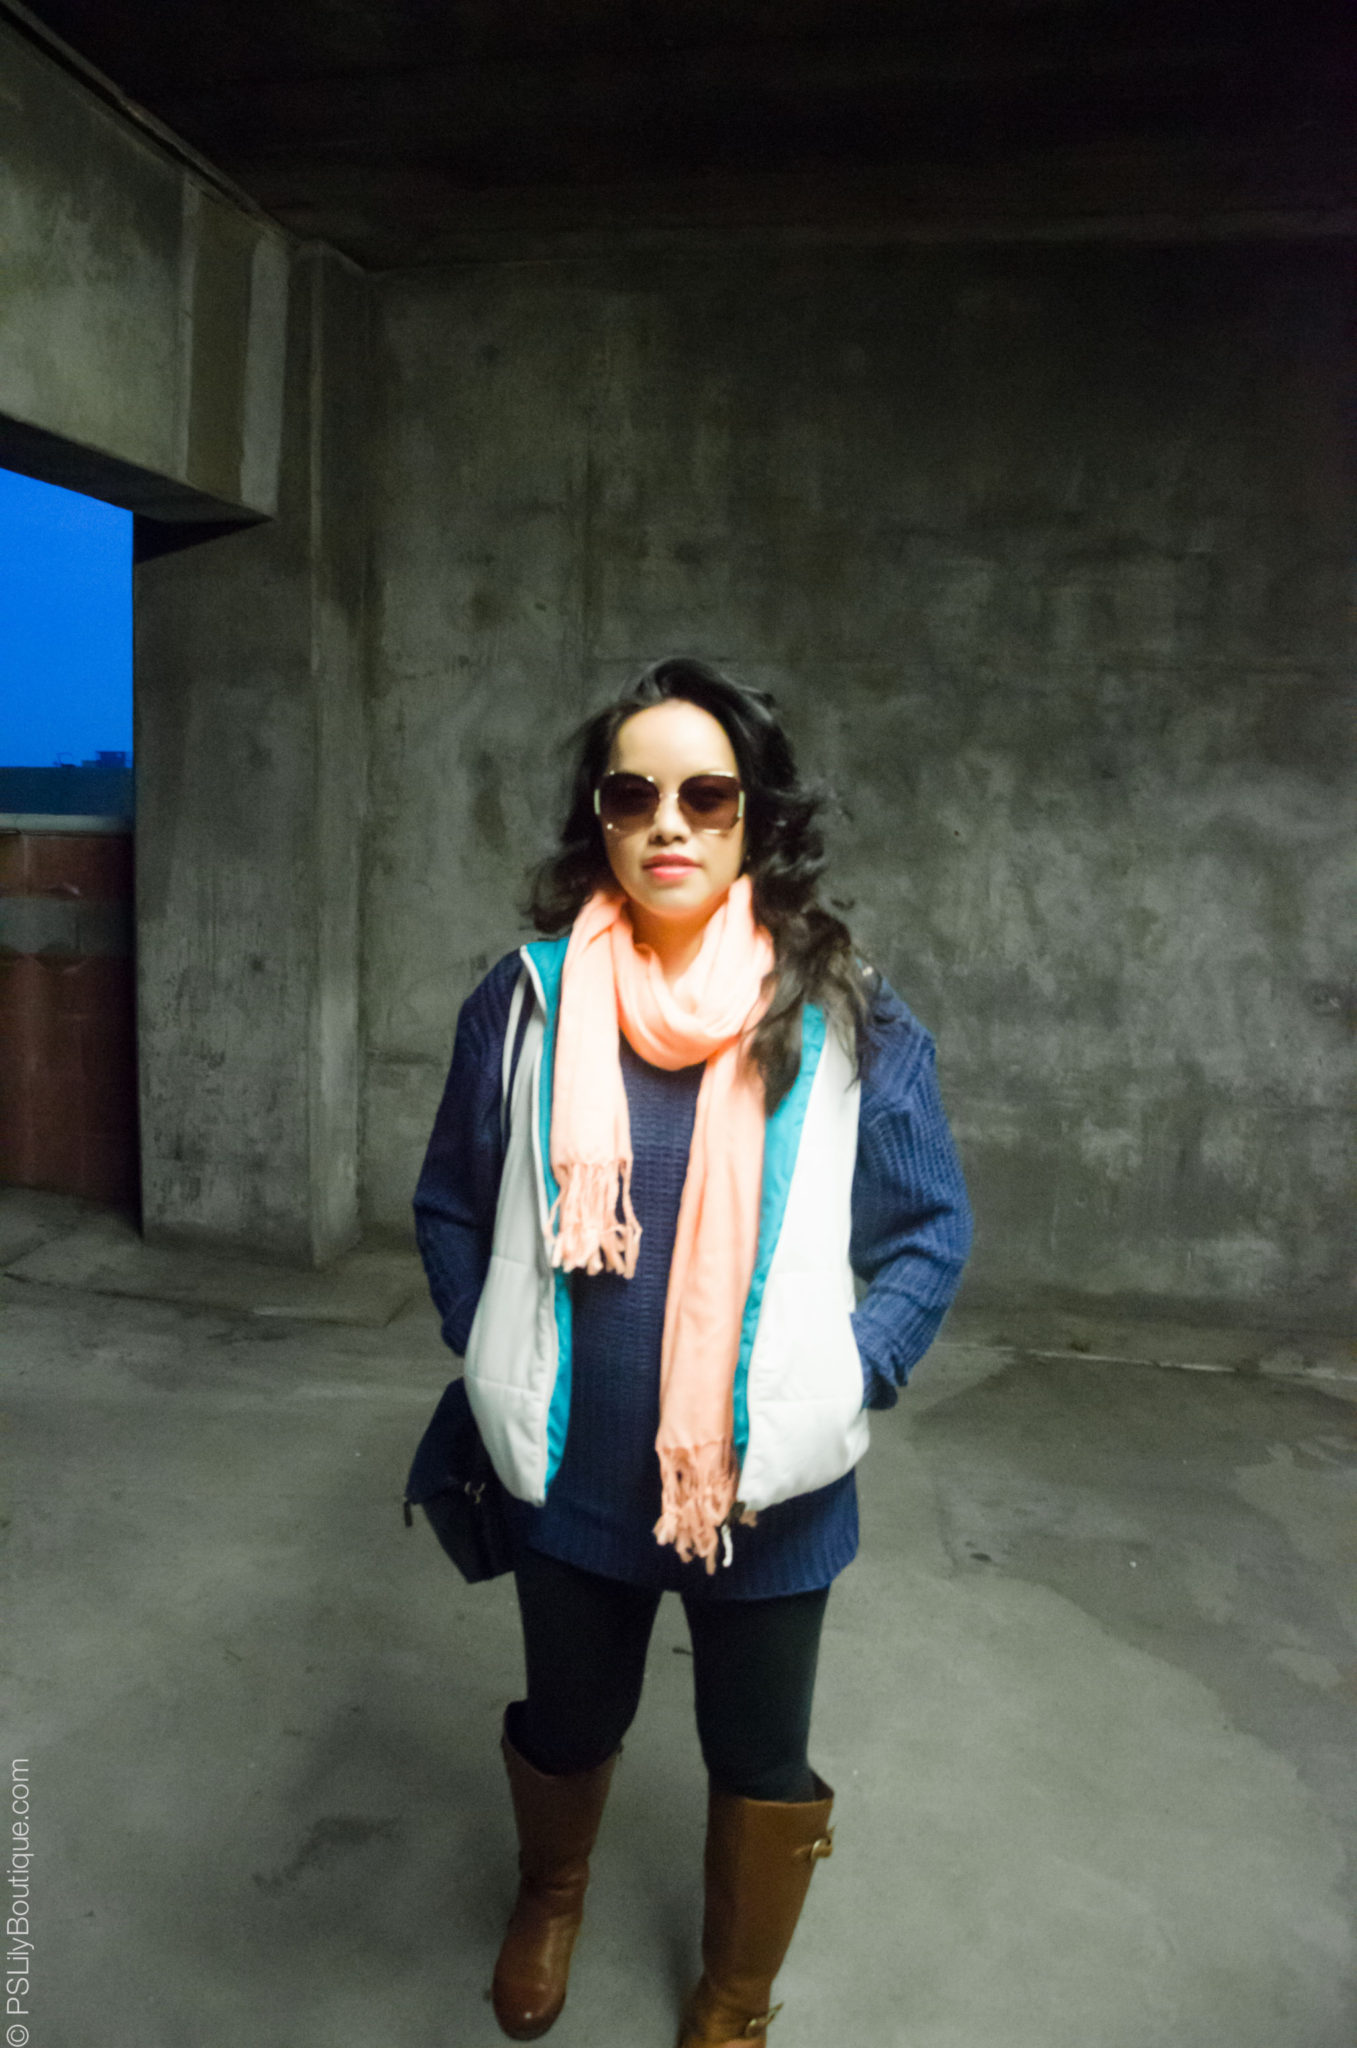 Cozy-up-PSLilyBoutique-instagram-pinterest-peach-orange-fringe-scarf-navy-blue-cable-knit-sweater-black-forever-21-leggings-lucky-brand-sunglasses-fall-winter-2018-outfit-ideas-long-hair-4